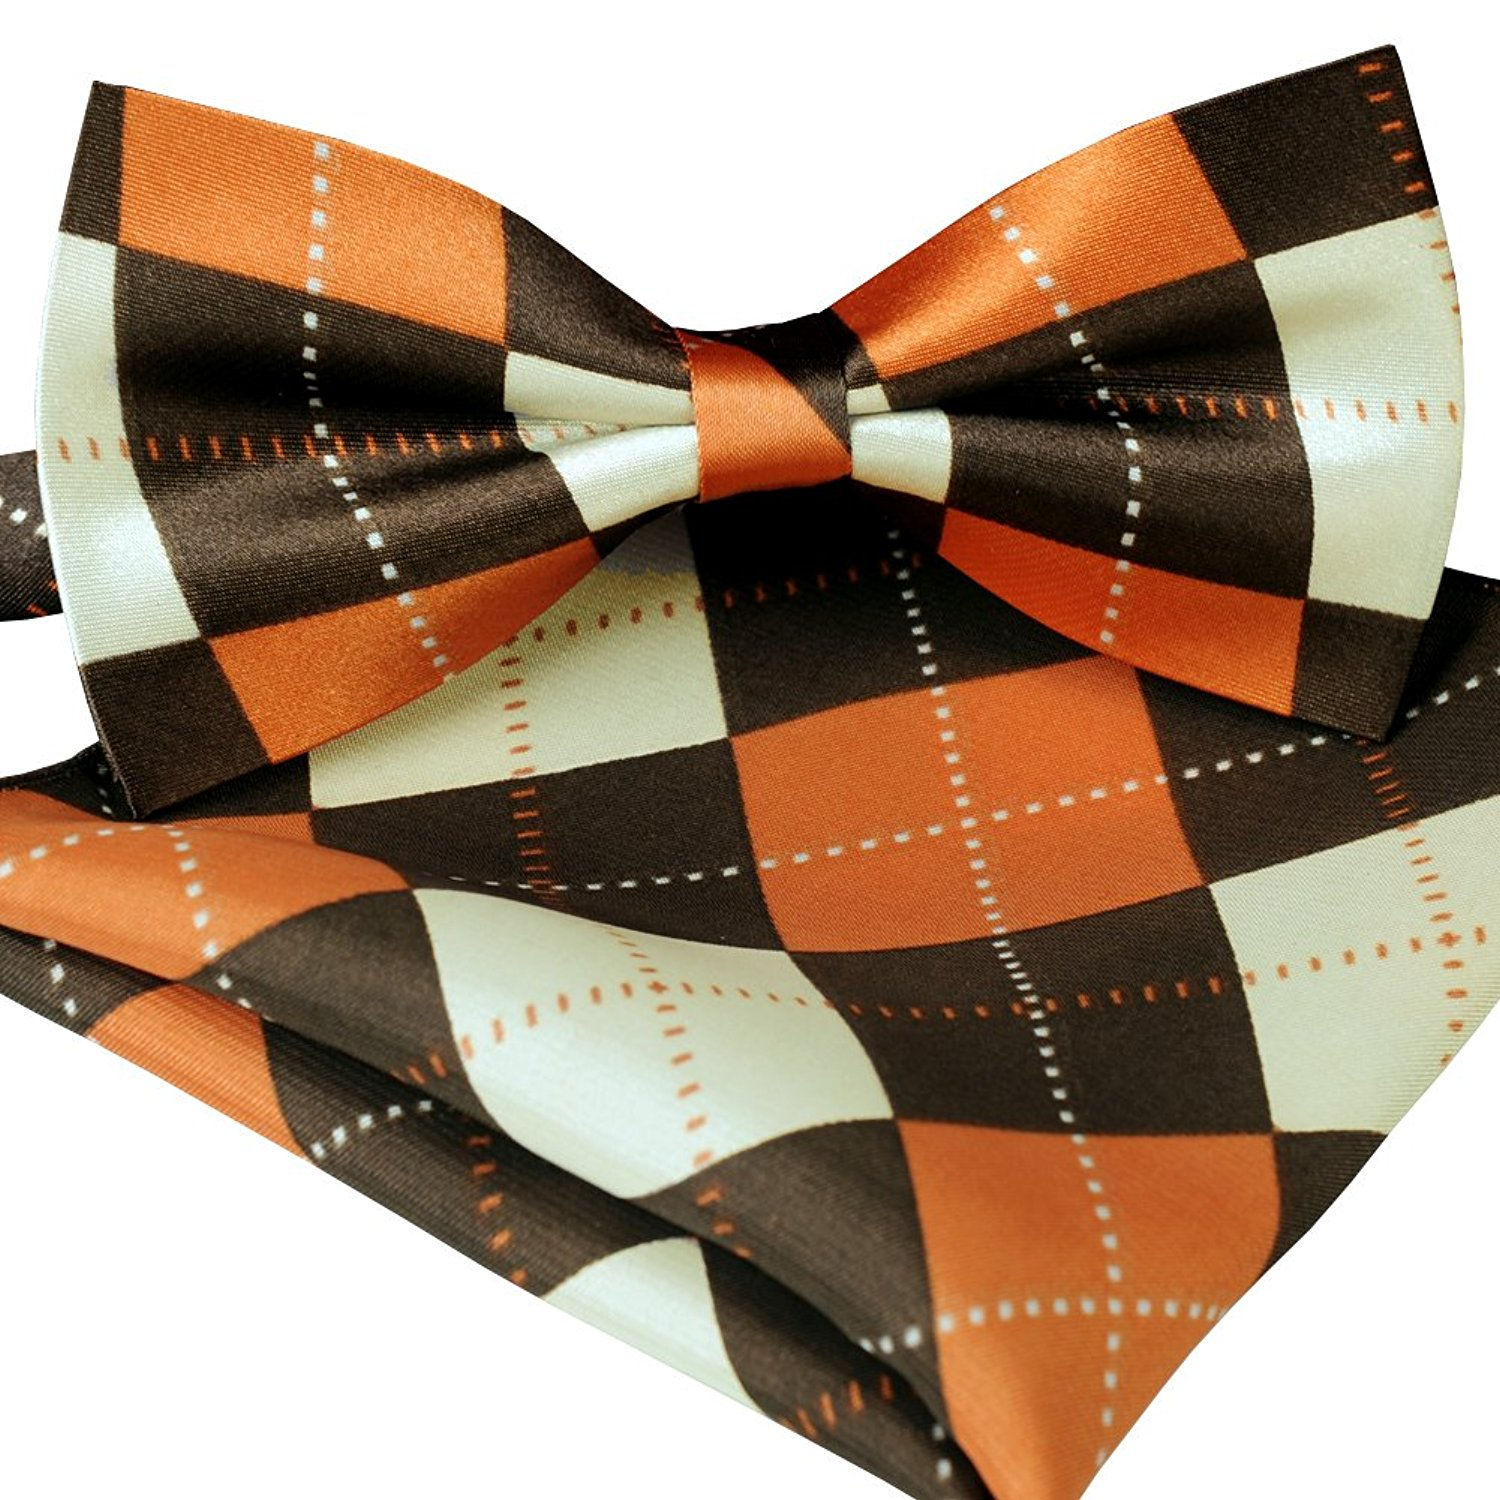 ST34 Brand new Silk feel SATIN Orange and Brown Argyle Plaid Bow tie for Men Bow tie and Pocket square SET BB-1028